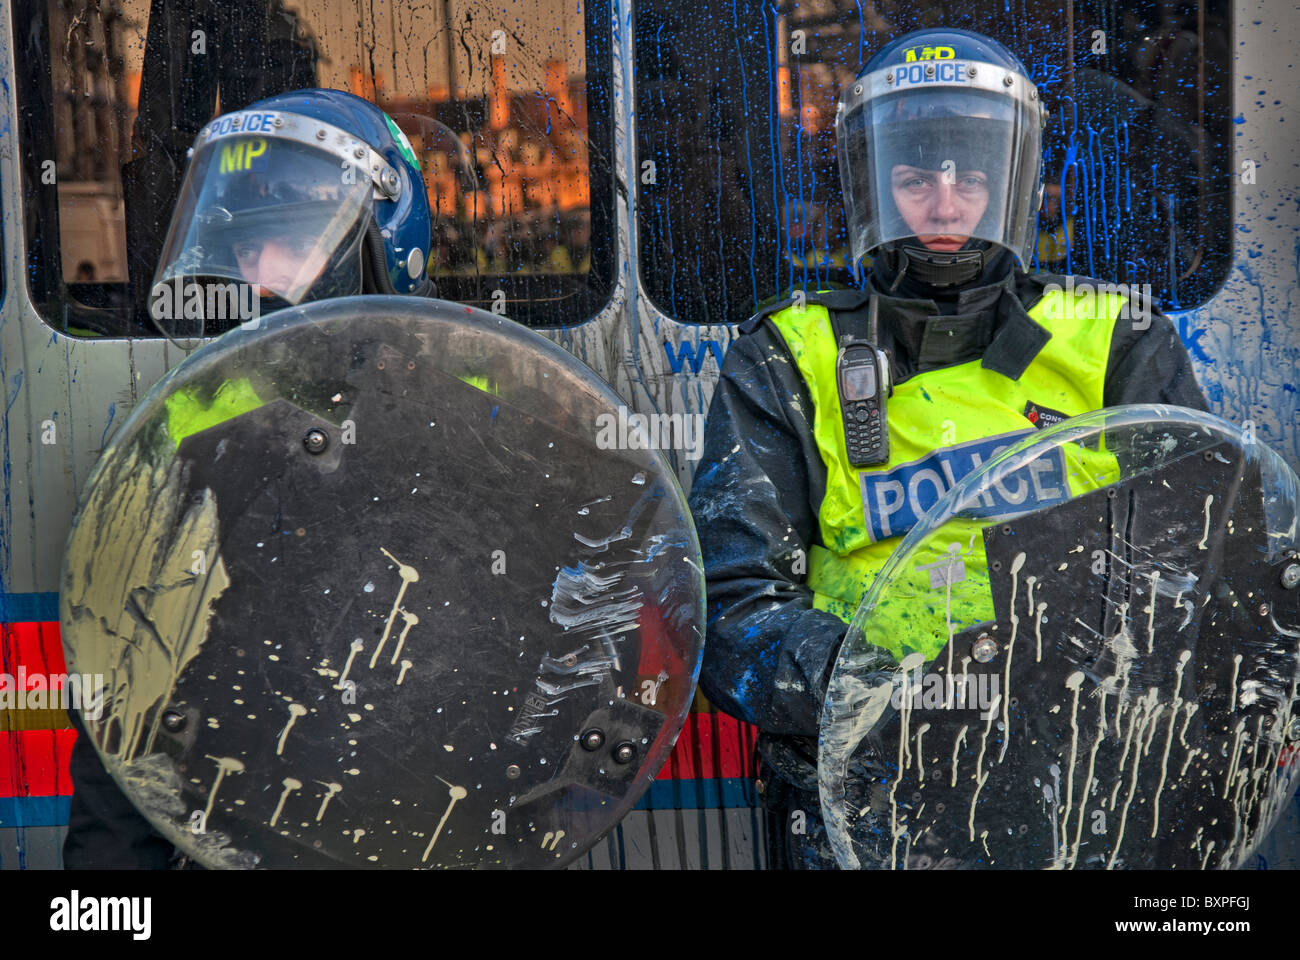 TWO RIOT POLICE IN DYE SMUDGE AFTER THE PROTEST IN PARLIAMENT SQUARE/NOVEMBER 2010 - Stock Image